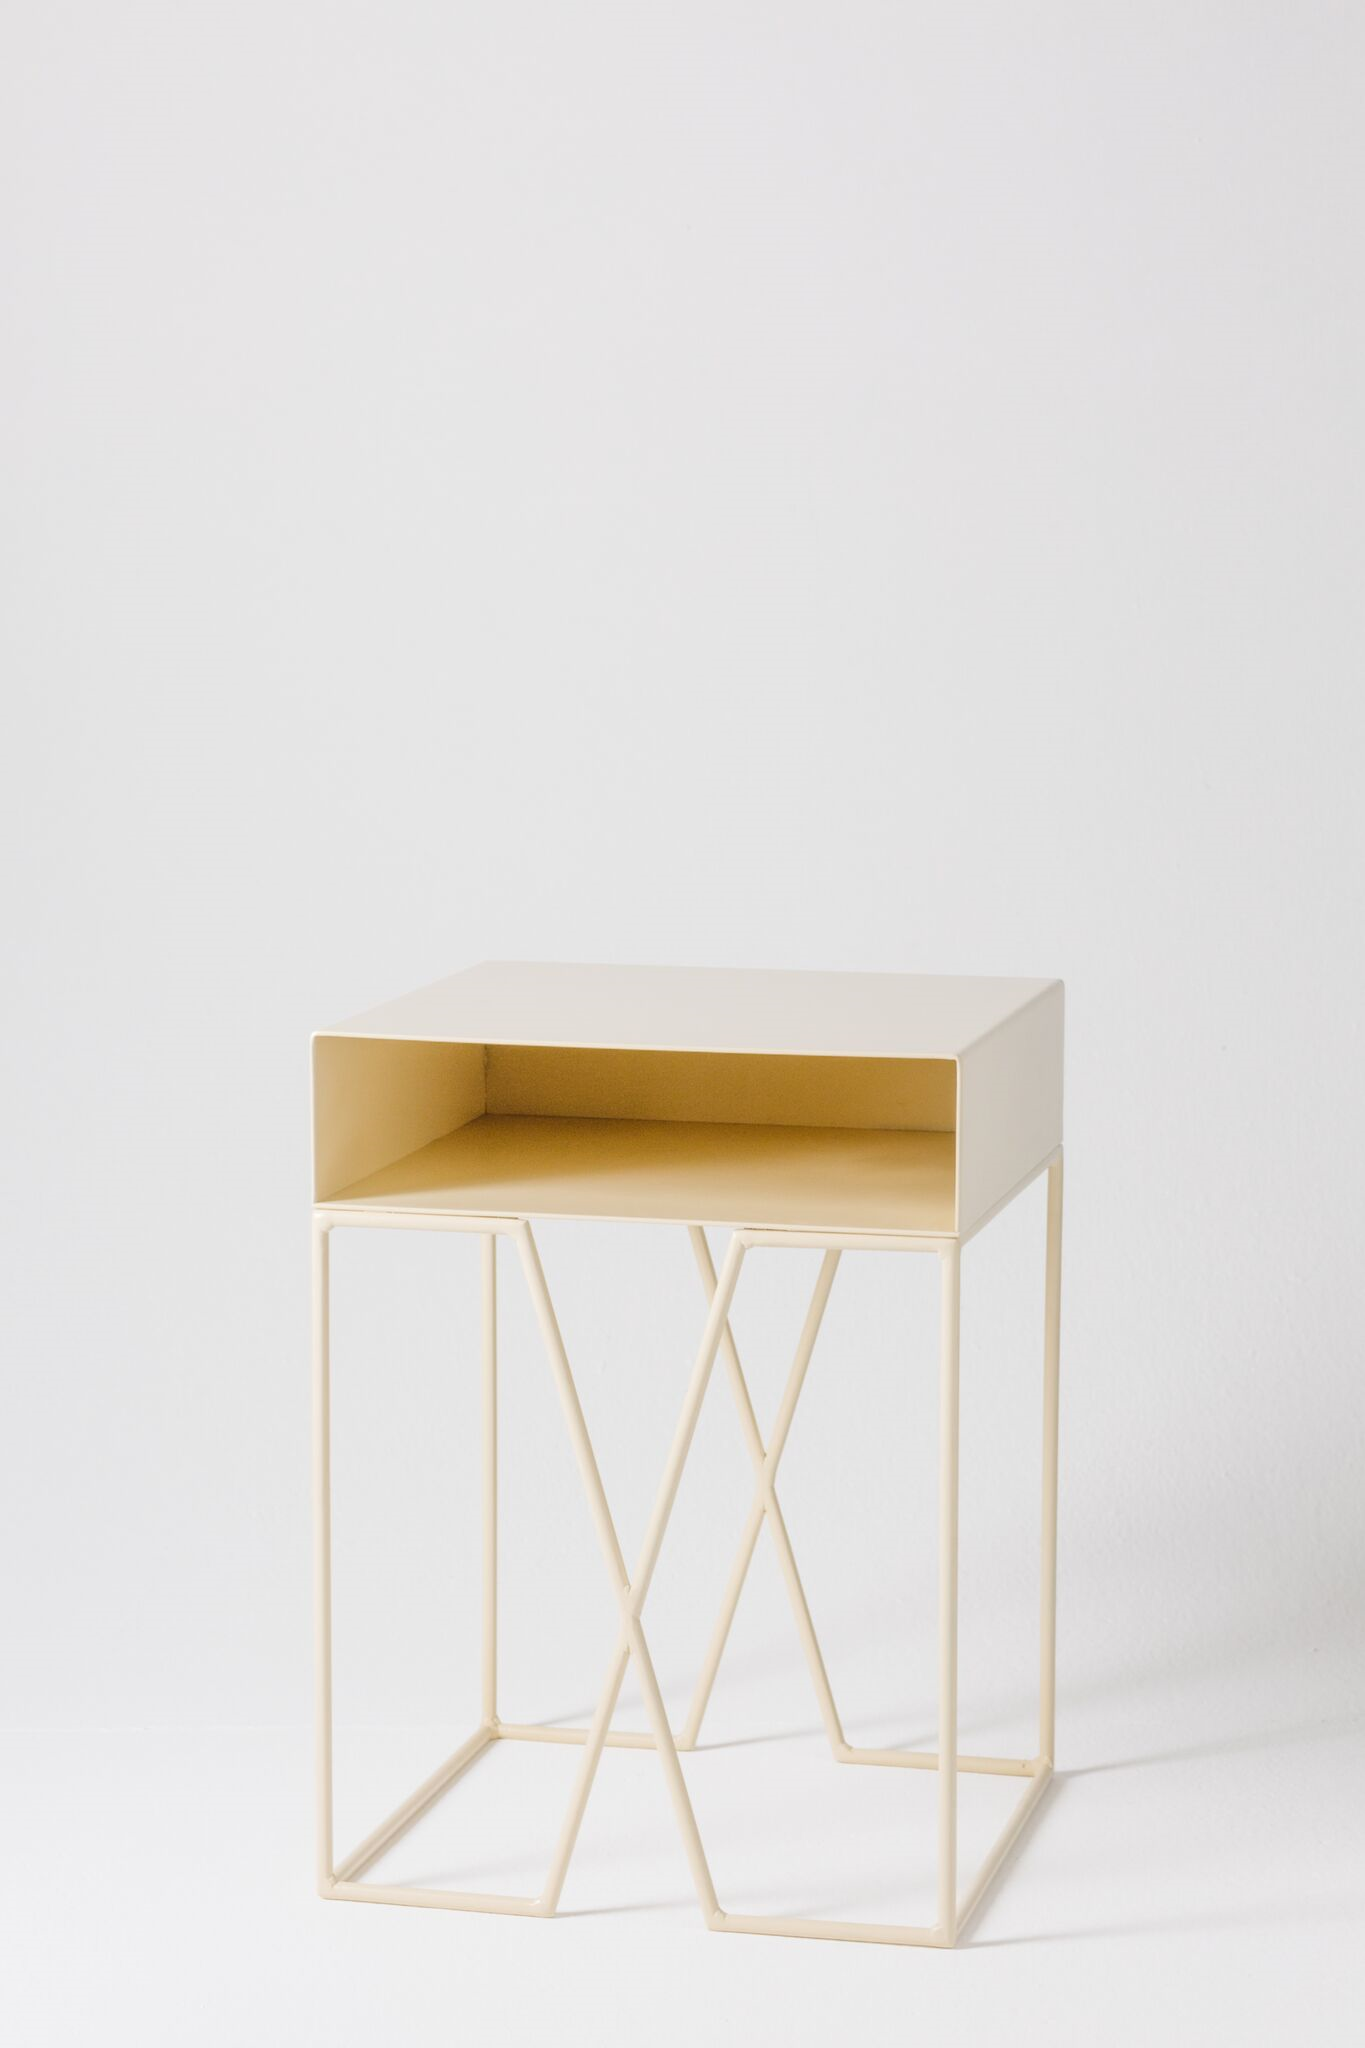 Gallery Of Tangram Bedside Table By Idle Hands Local Australian Furniture & Object Design West Heidelberg, Melbourne Image 1